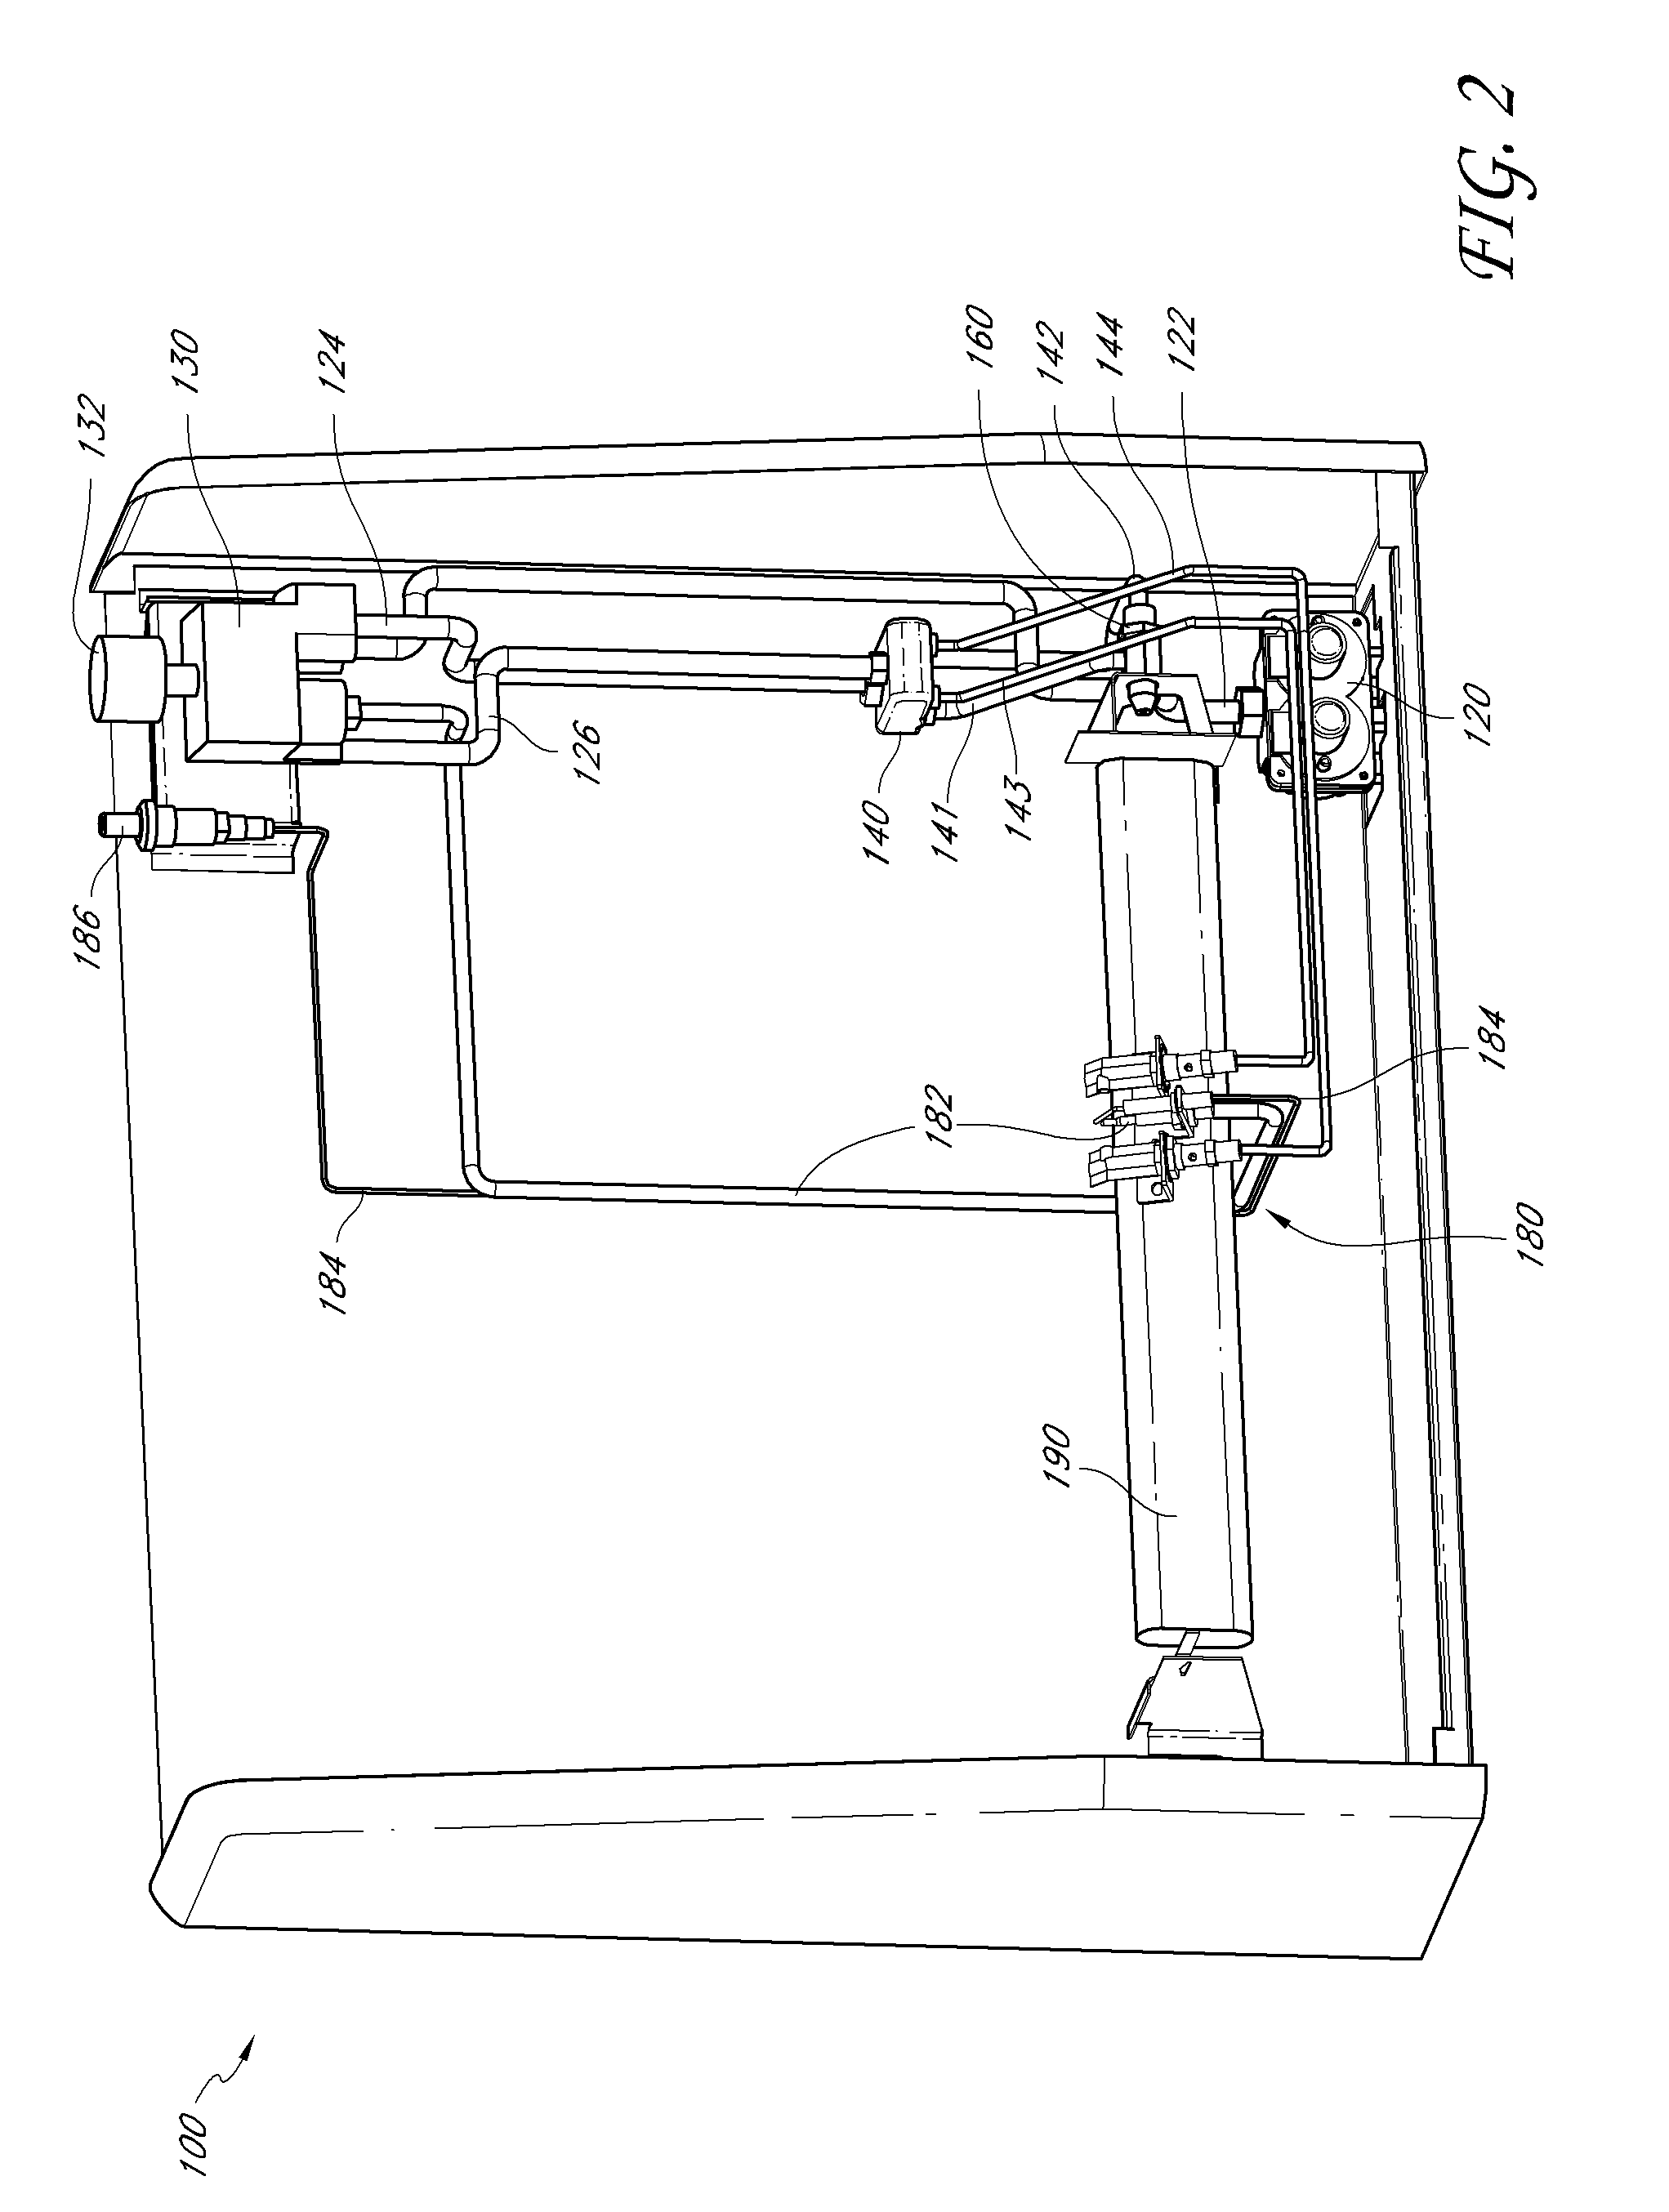 Patent Us8757139 Dual Fuel Heating System And Air